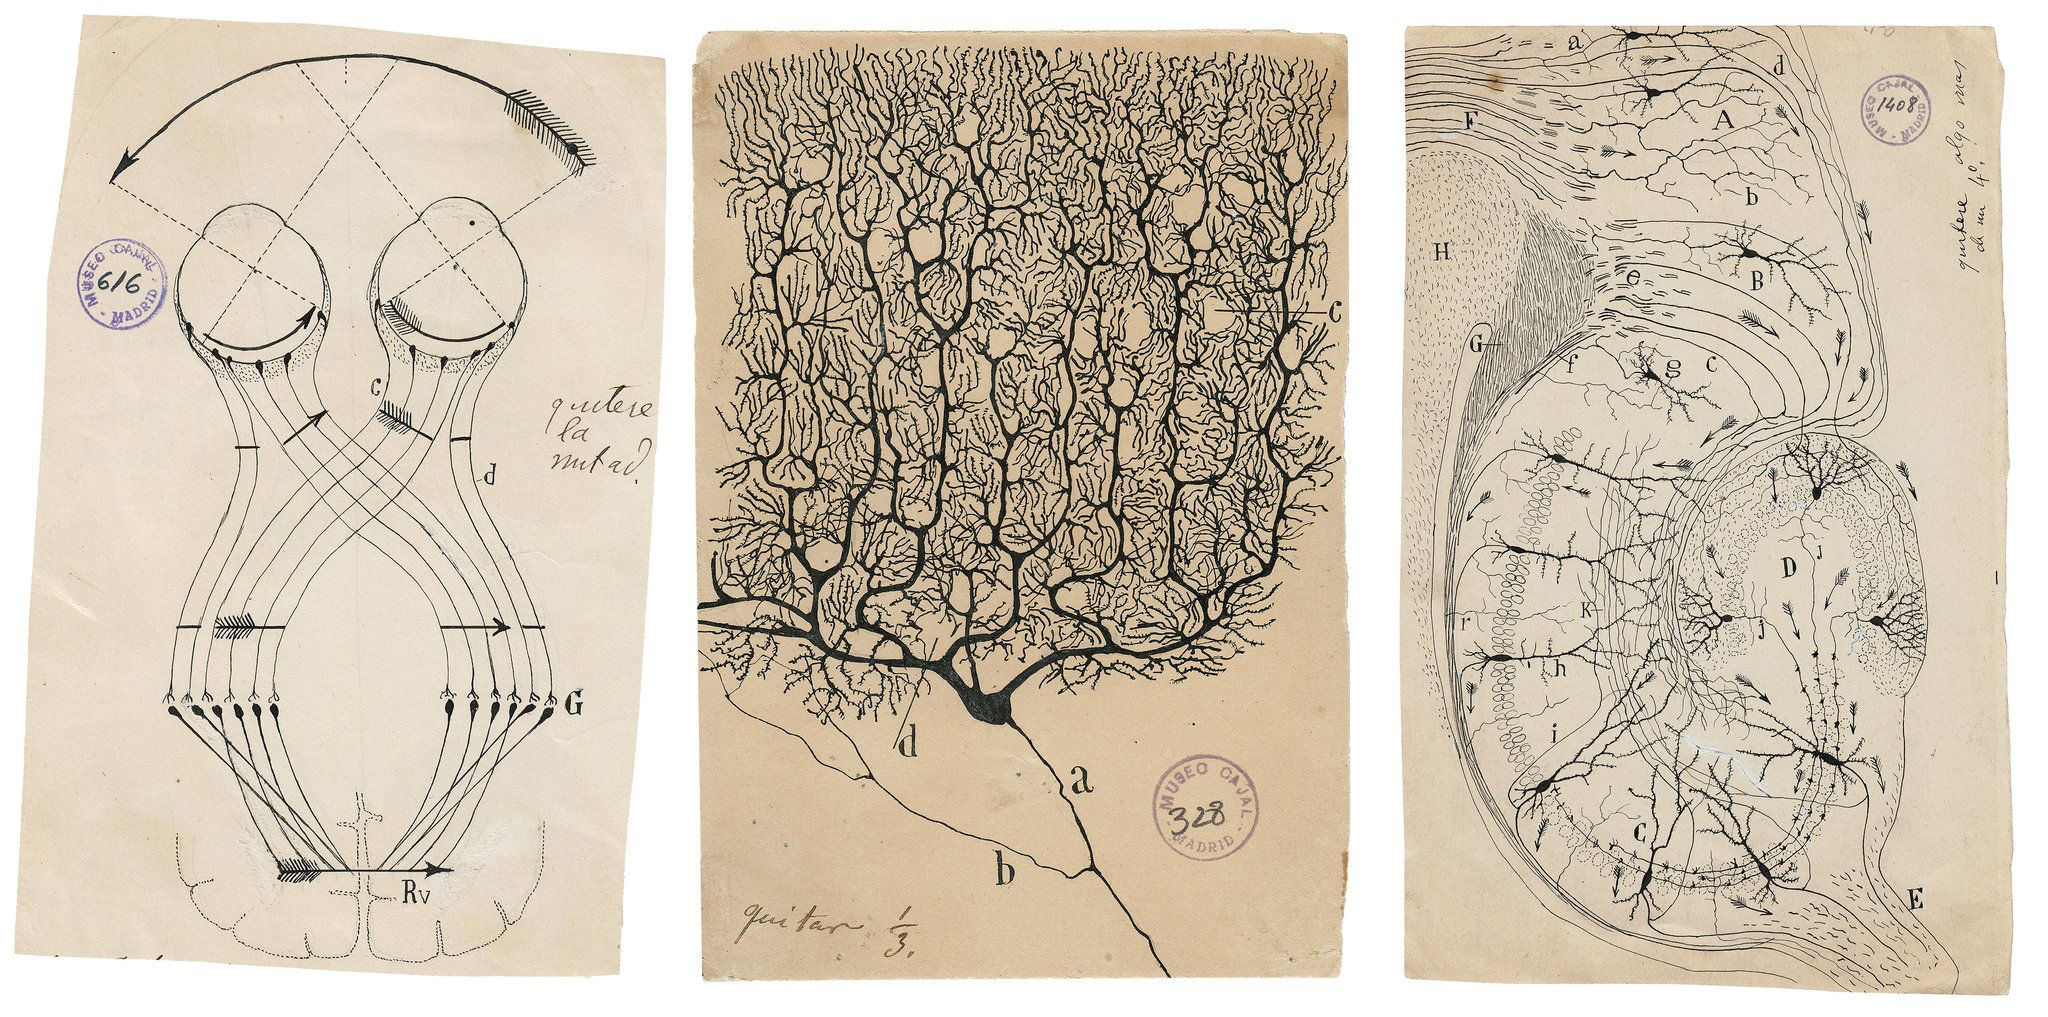 Hunched Over a Microscope, He Sketched the Secrets of How the Brain ...